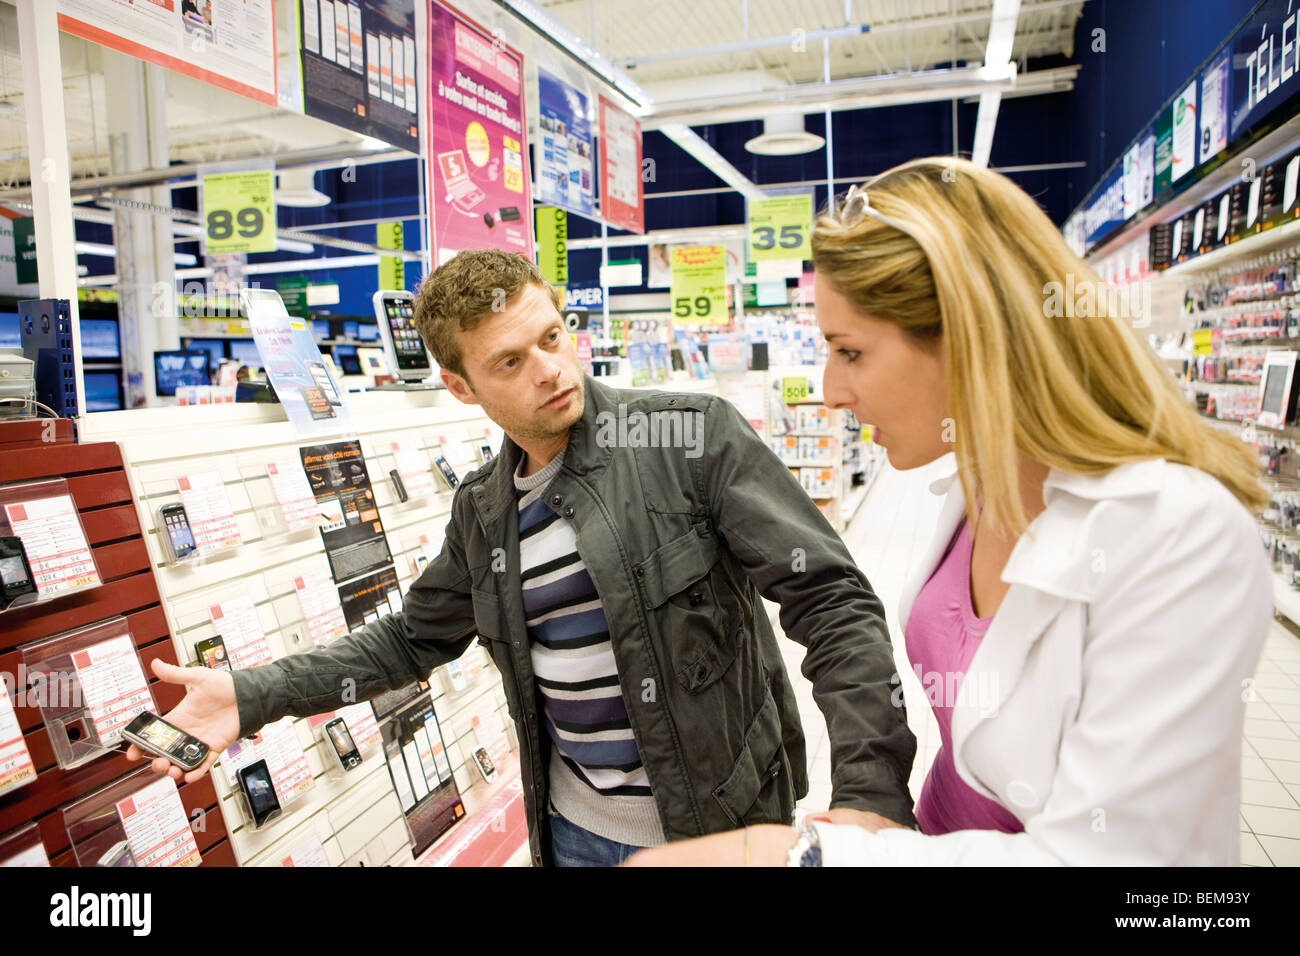 Couple looking at cell phones in electronics section of department store - Stock Image